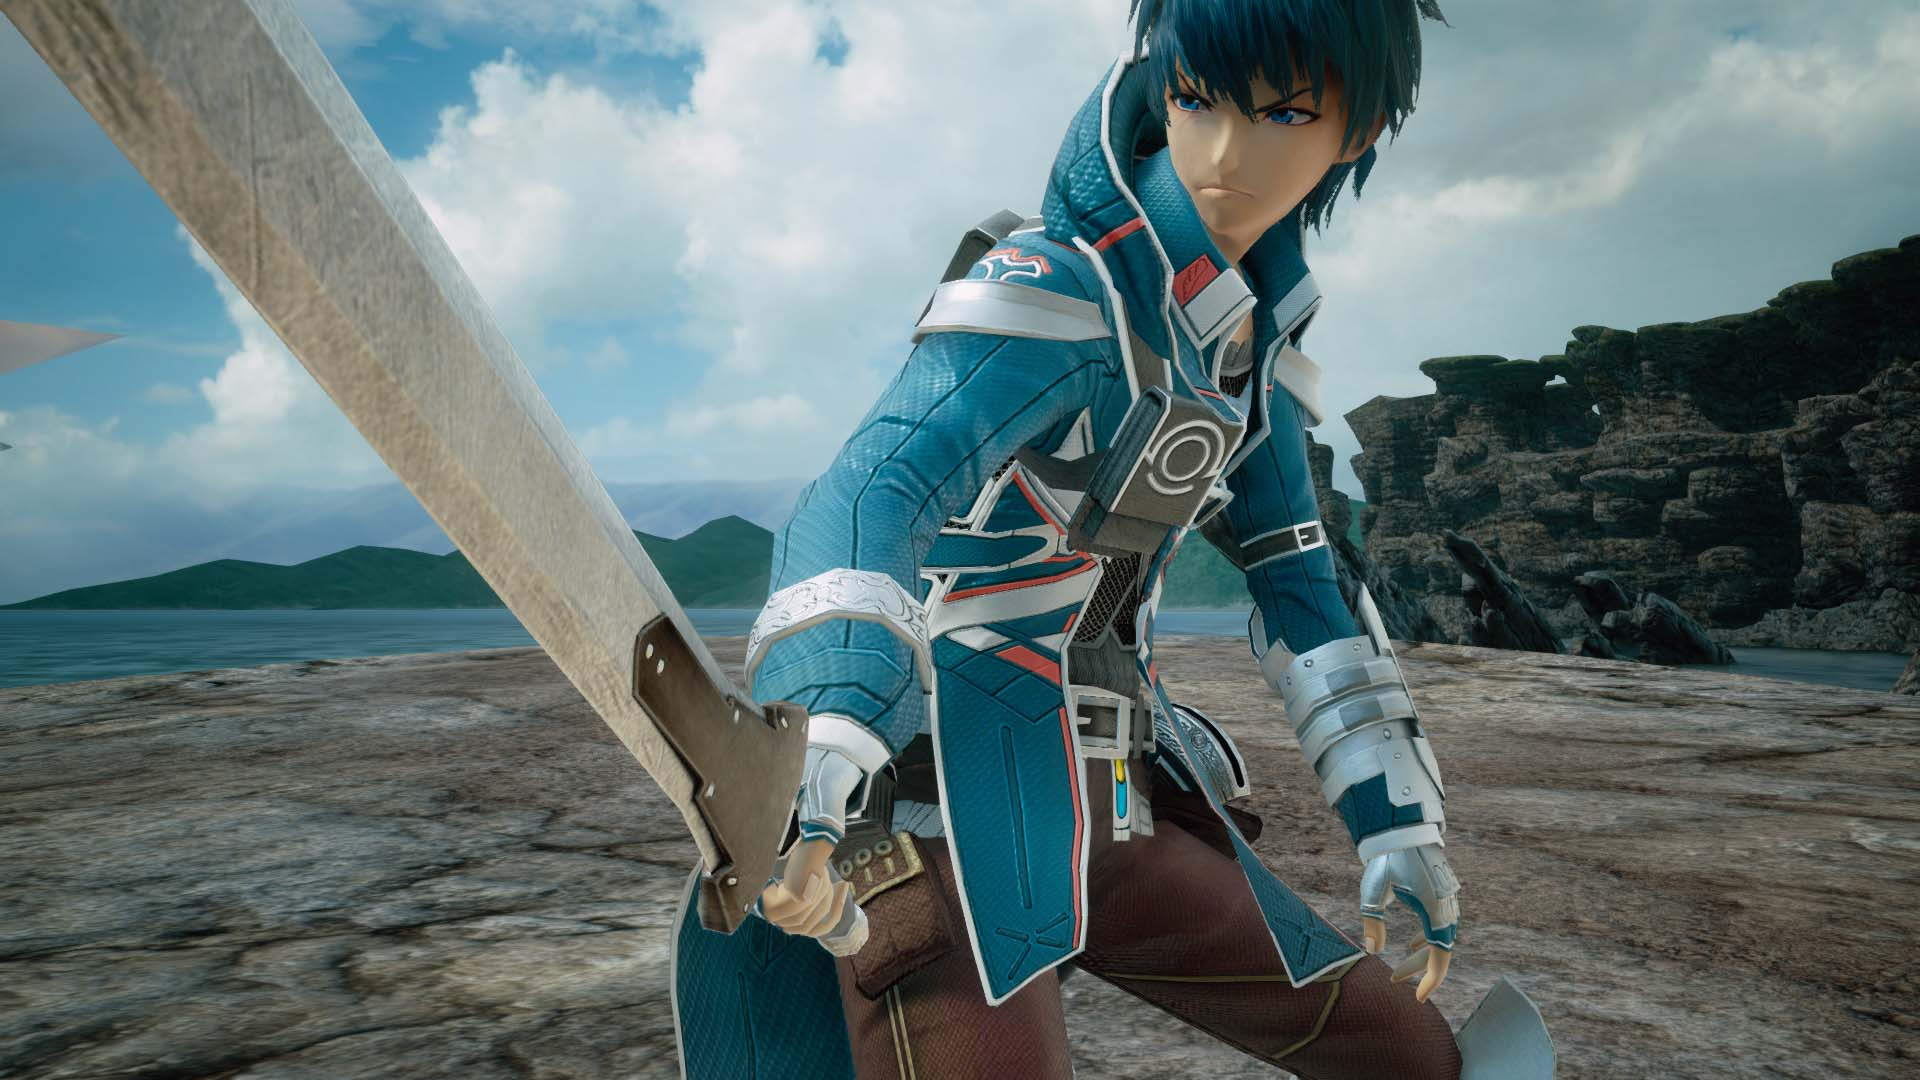 Star Ocean 5 PS3 And PS4 Differences Detailed Just Push Start